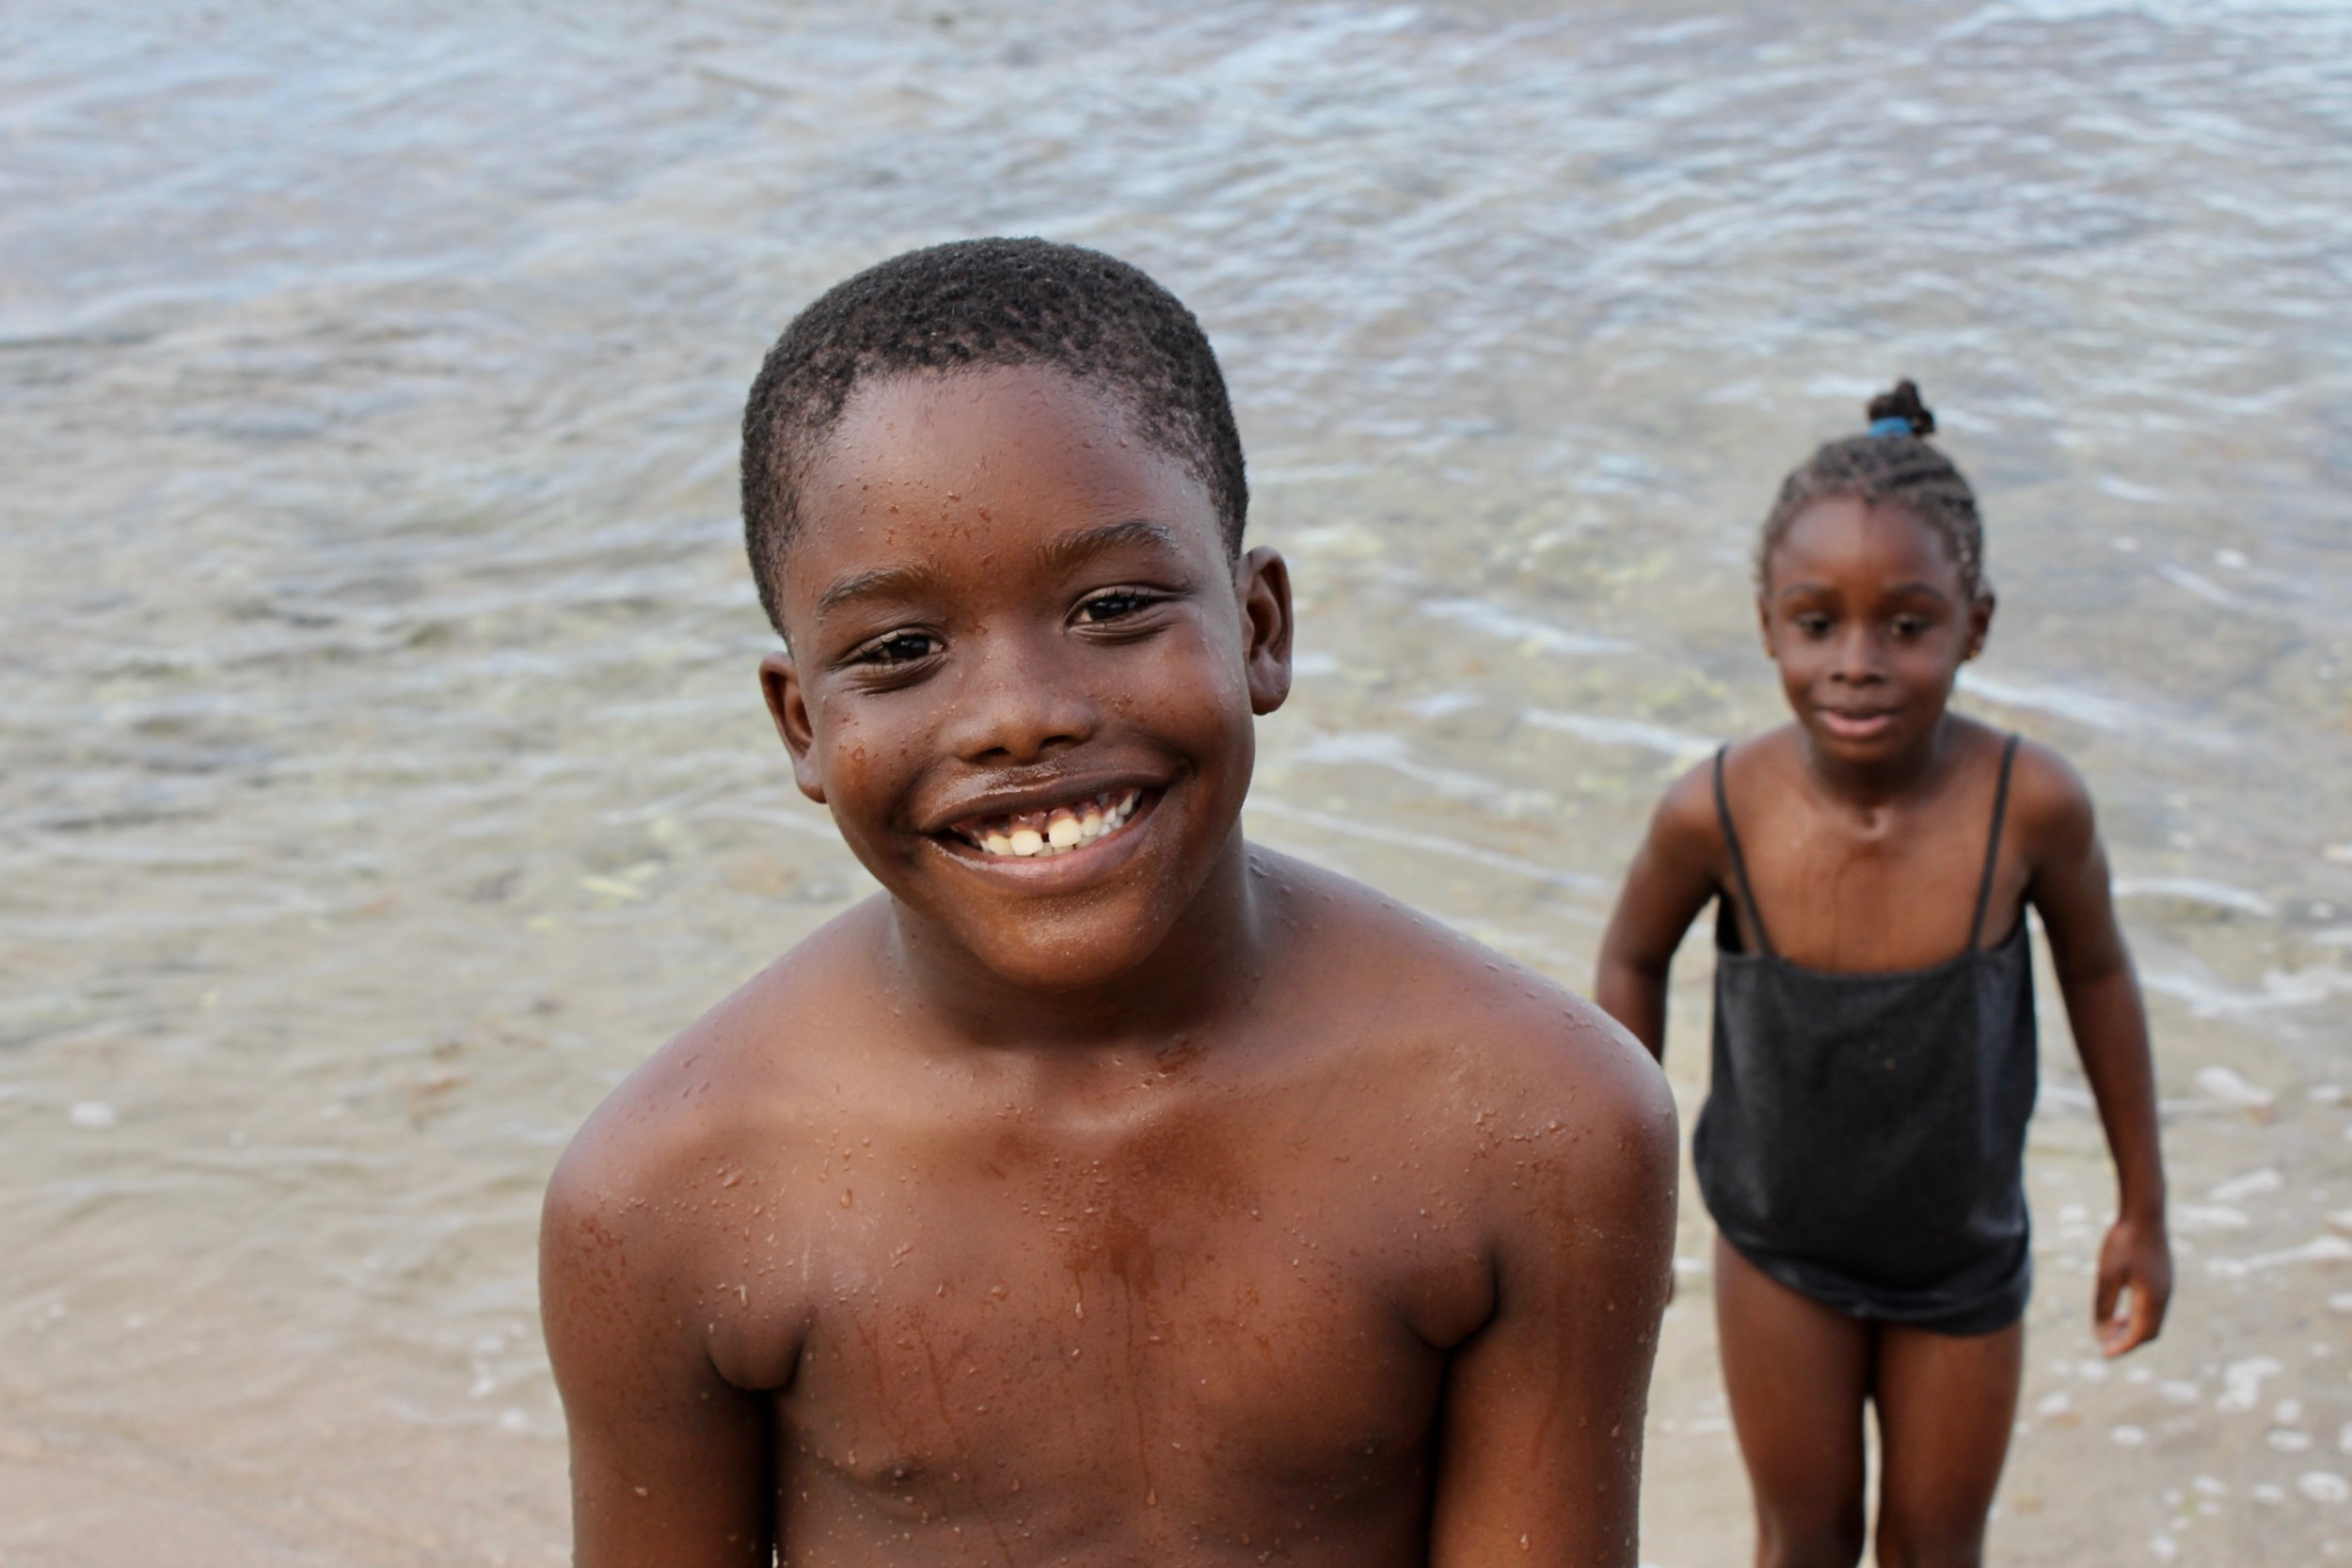 """I was taking pictures on the beach and he ran up to me and said """"cheeeseee"""" 😄 I took his picture, he said thank you, then ran away.   Bathsheba, Barbados"""